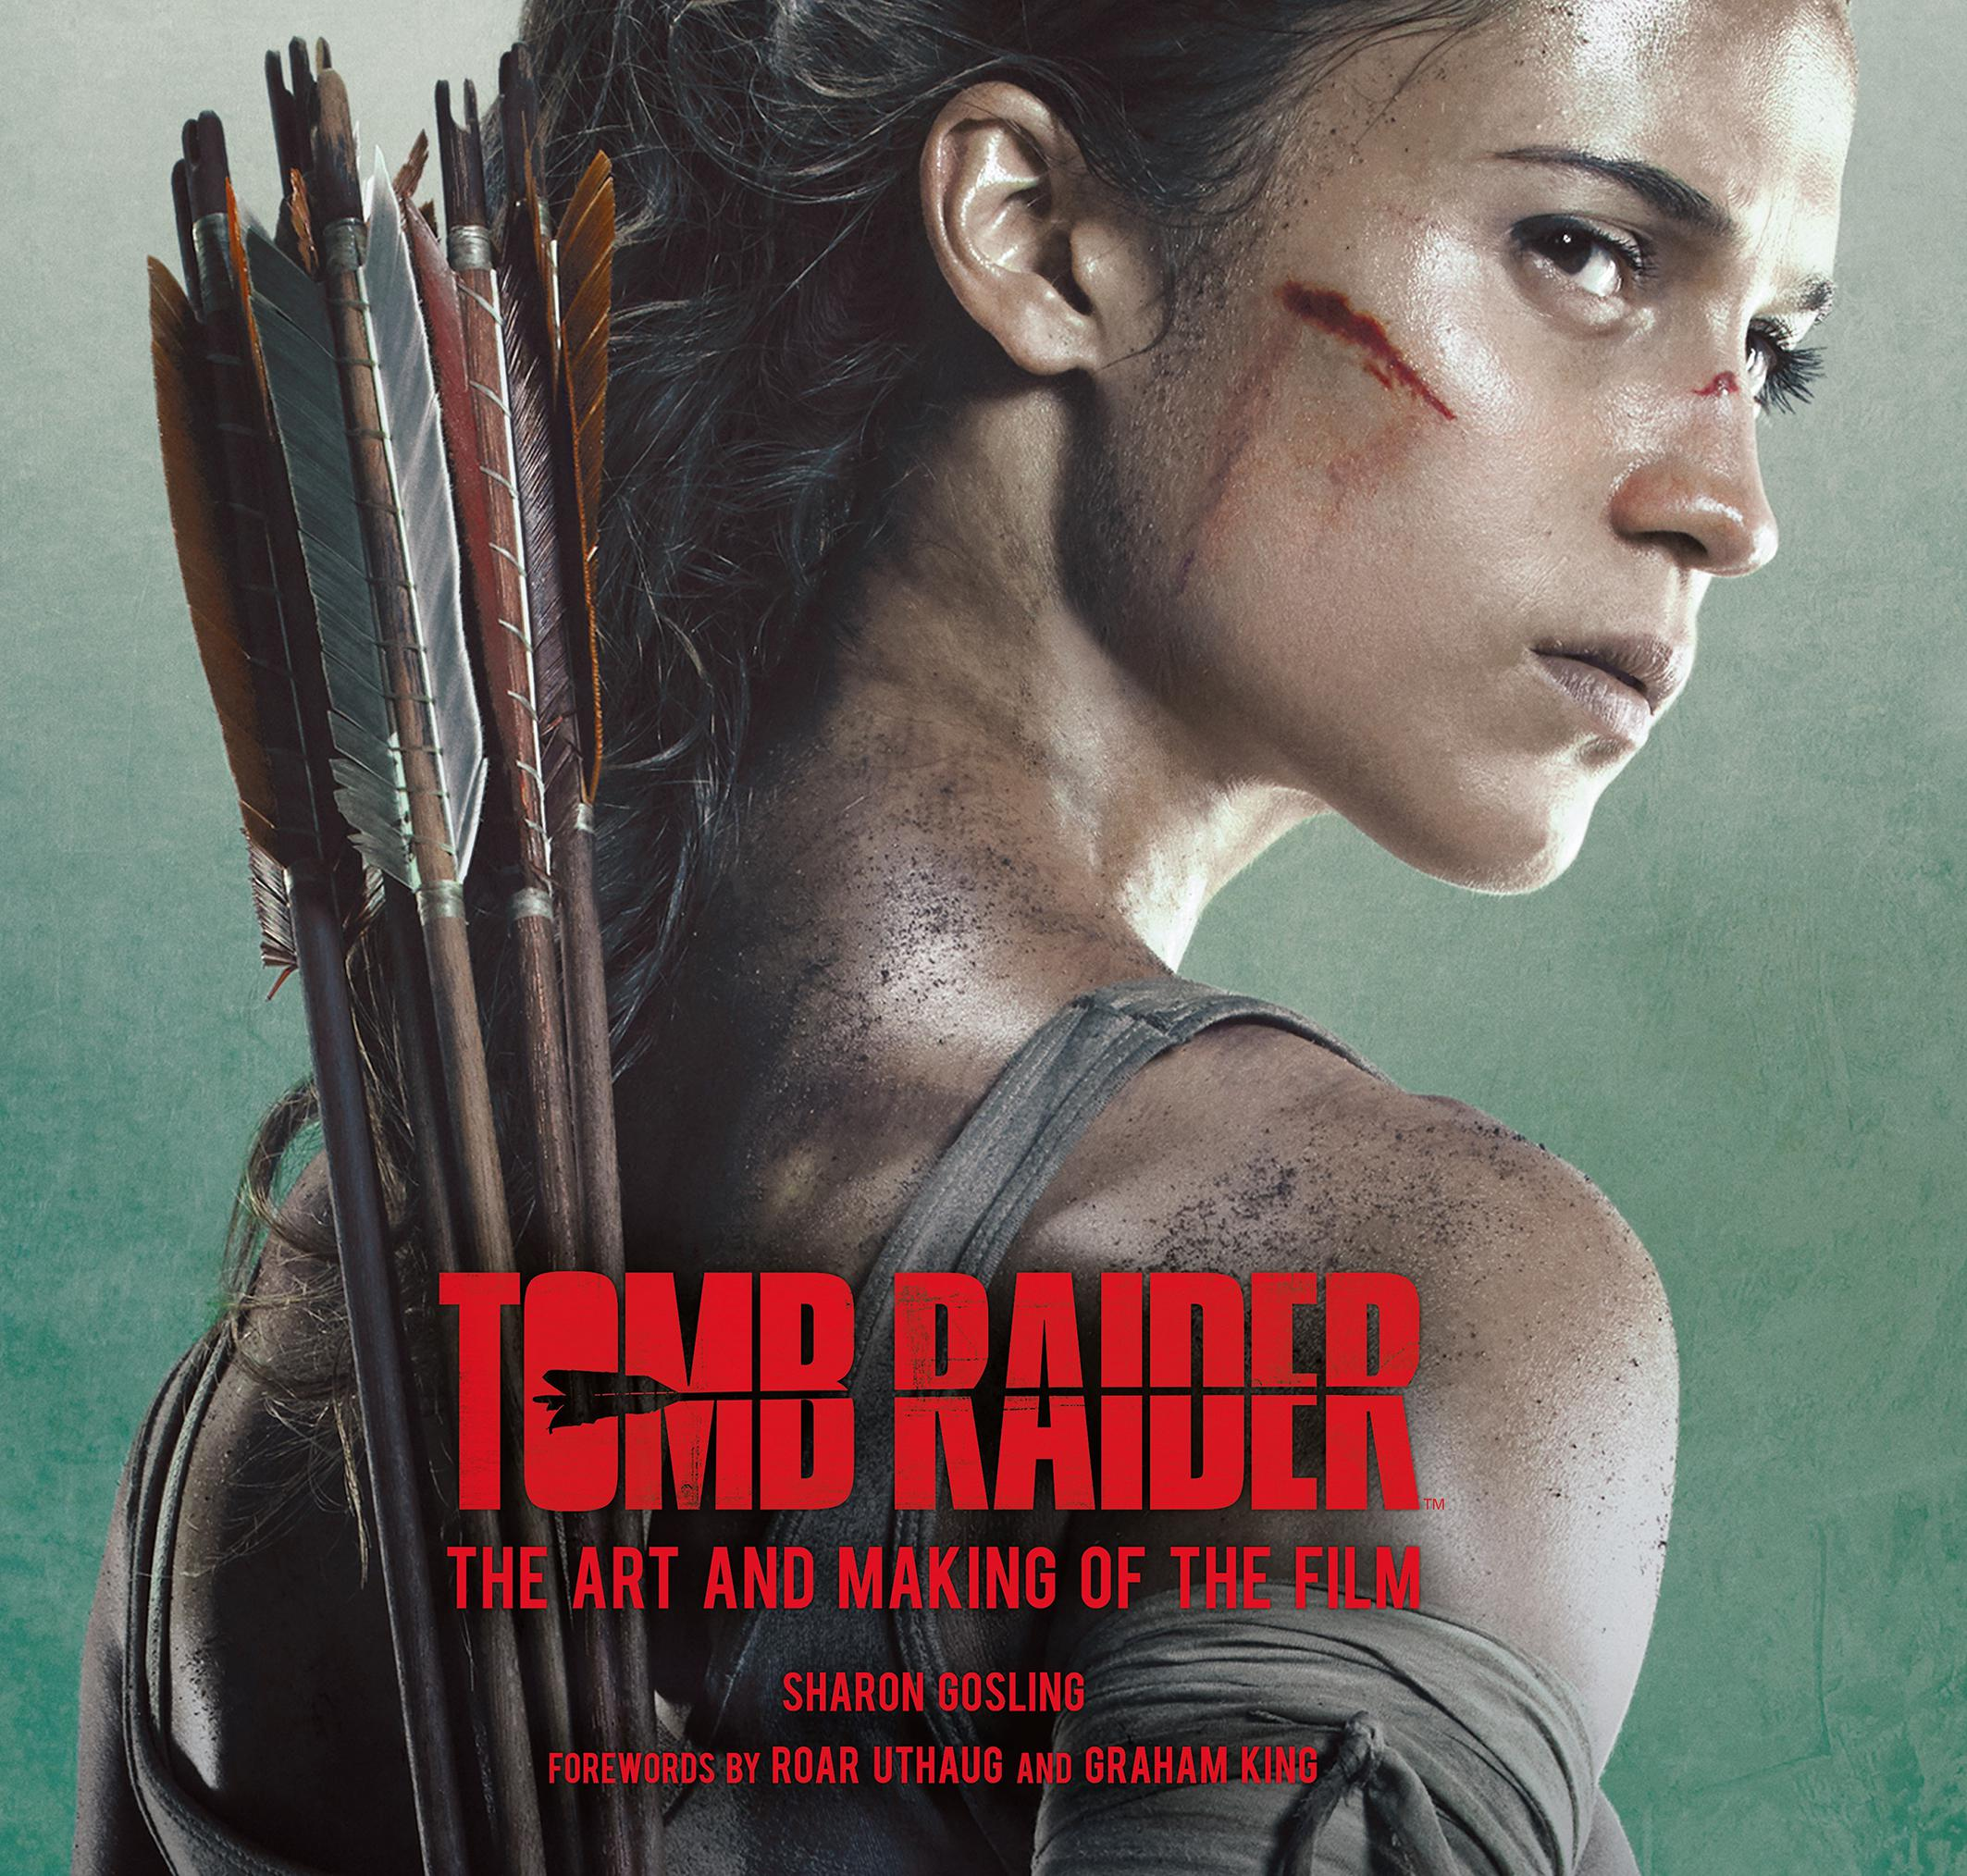 Tomb Raider: The Art and Making of the Film дмитрий goblin пучков rise of the tomb raider overwatch blade